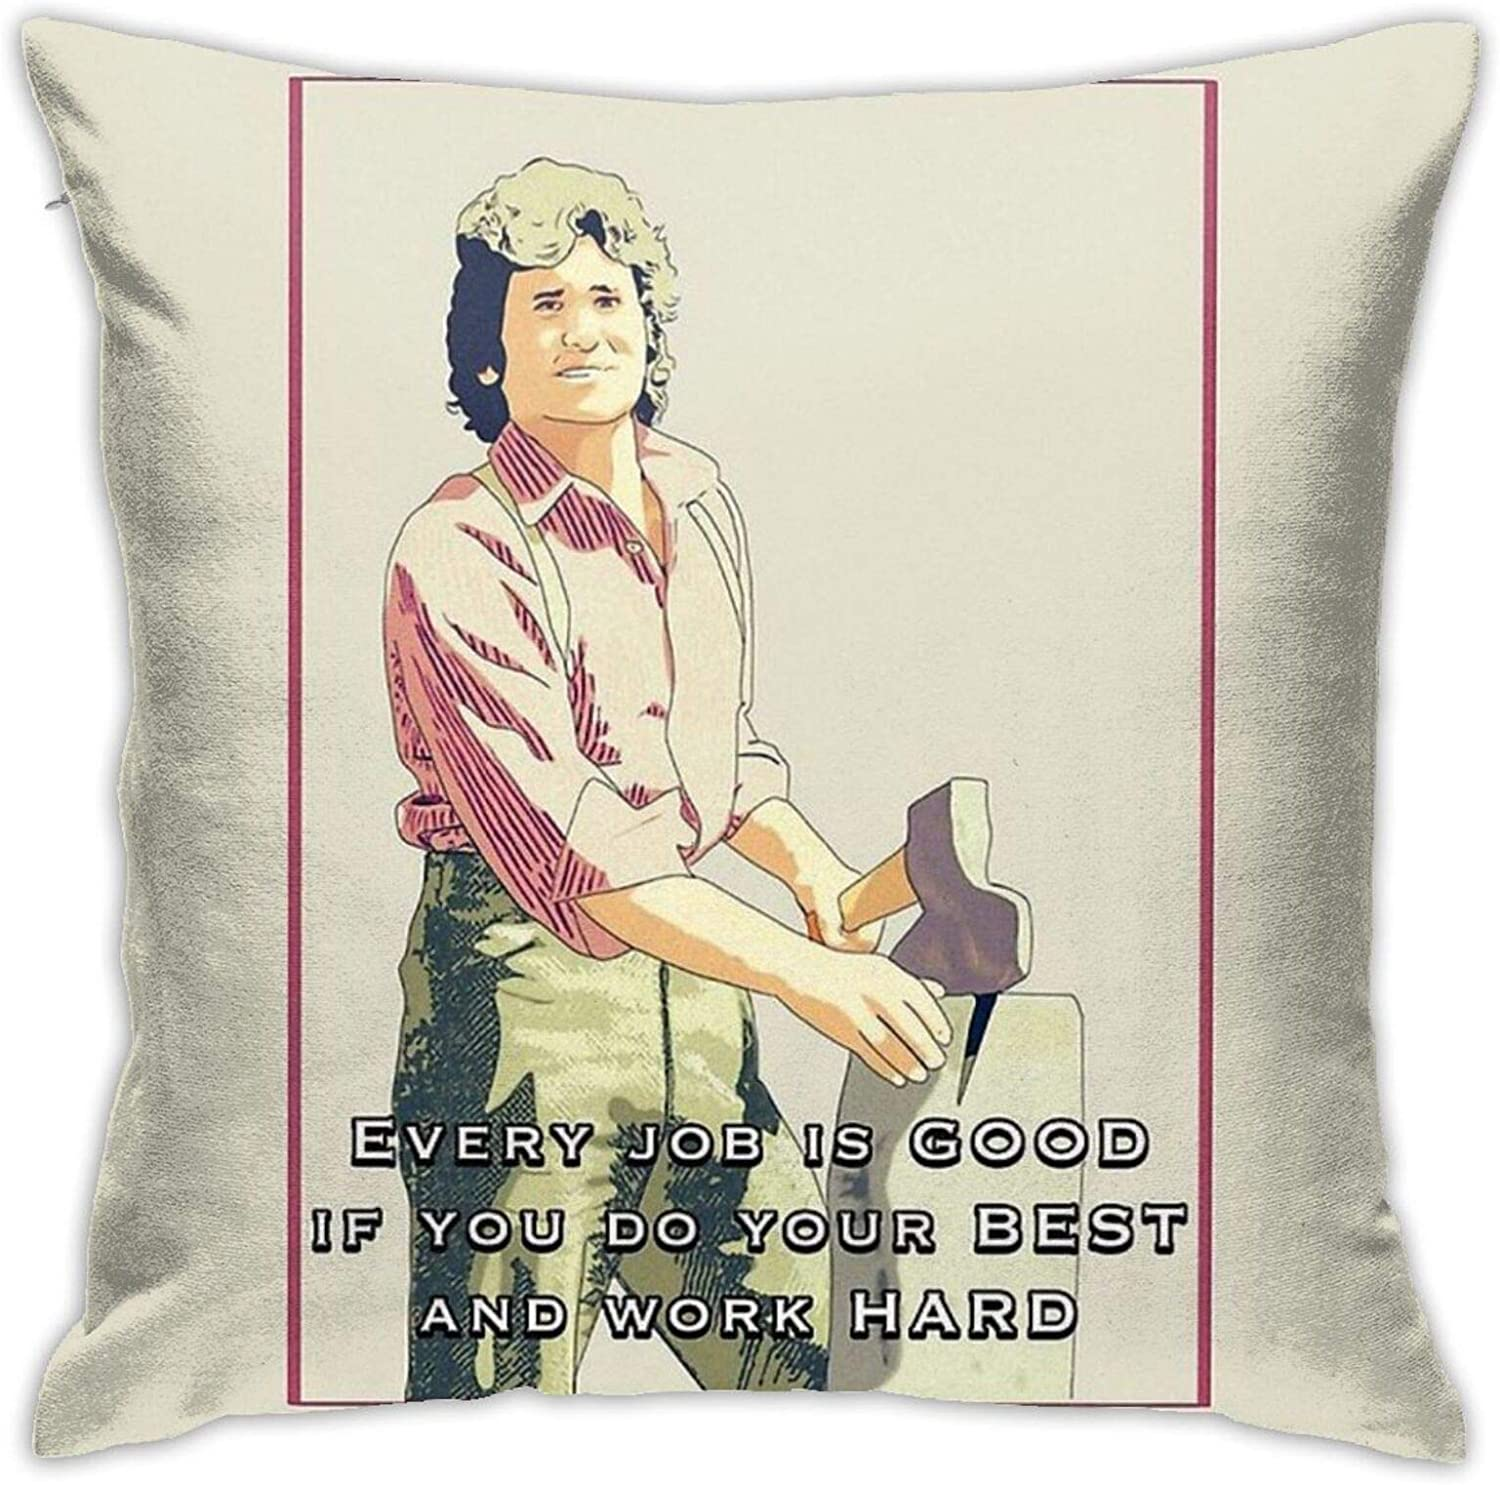 Ouskfh Charles Ingalls Quote Little House On The Prairie Bedroom Couch Sofa Square Pillow Cases Home Decor Throw Pillow Covers 18x18 inch